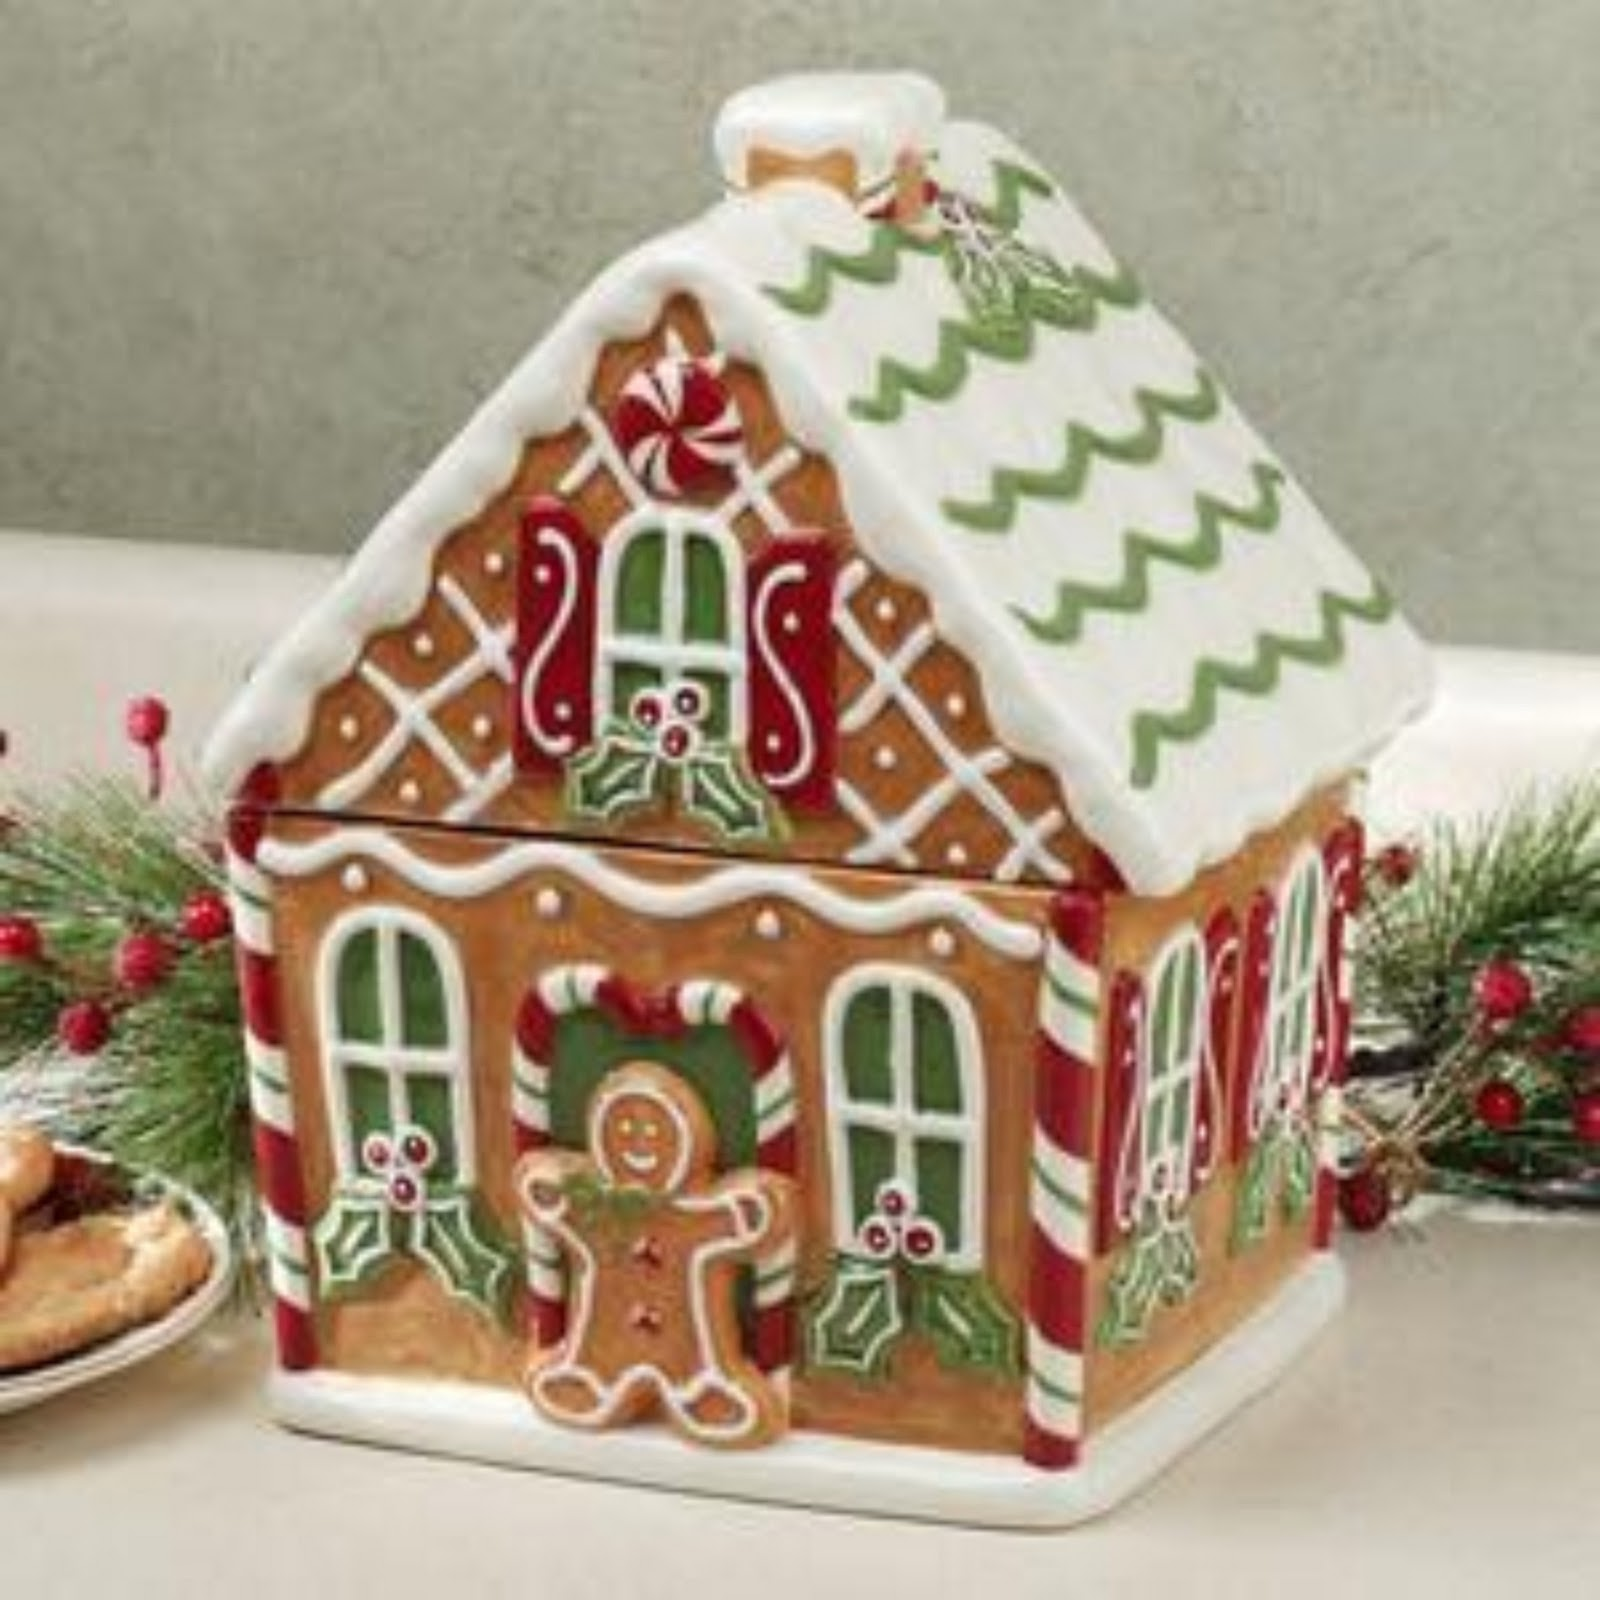 Ceramic christmas houses to paint - 117 Best Cookies Gingerbread House Images On Pinterest Gingerbread Houses Christmas Gingerbread House And Christmas Baking